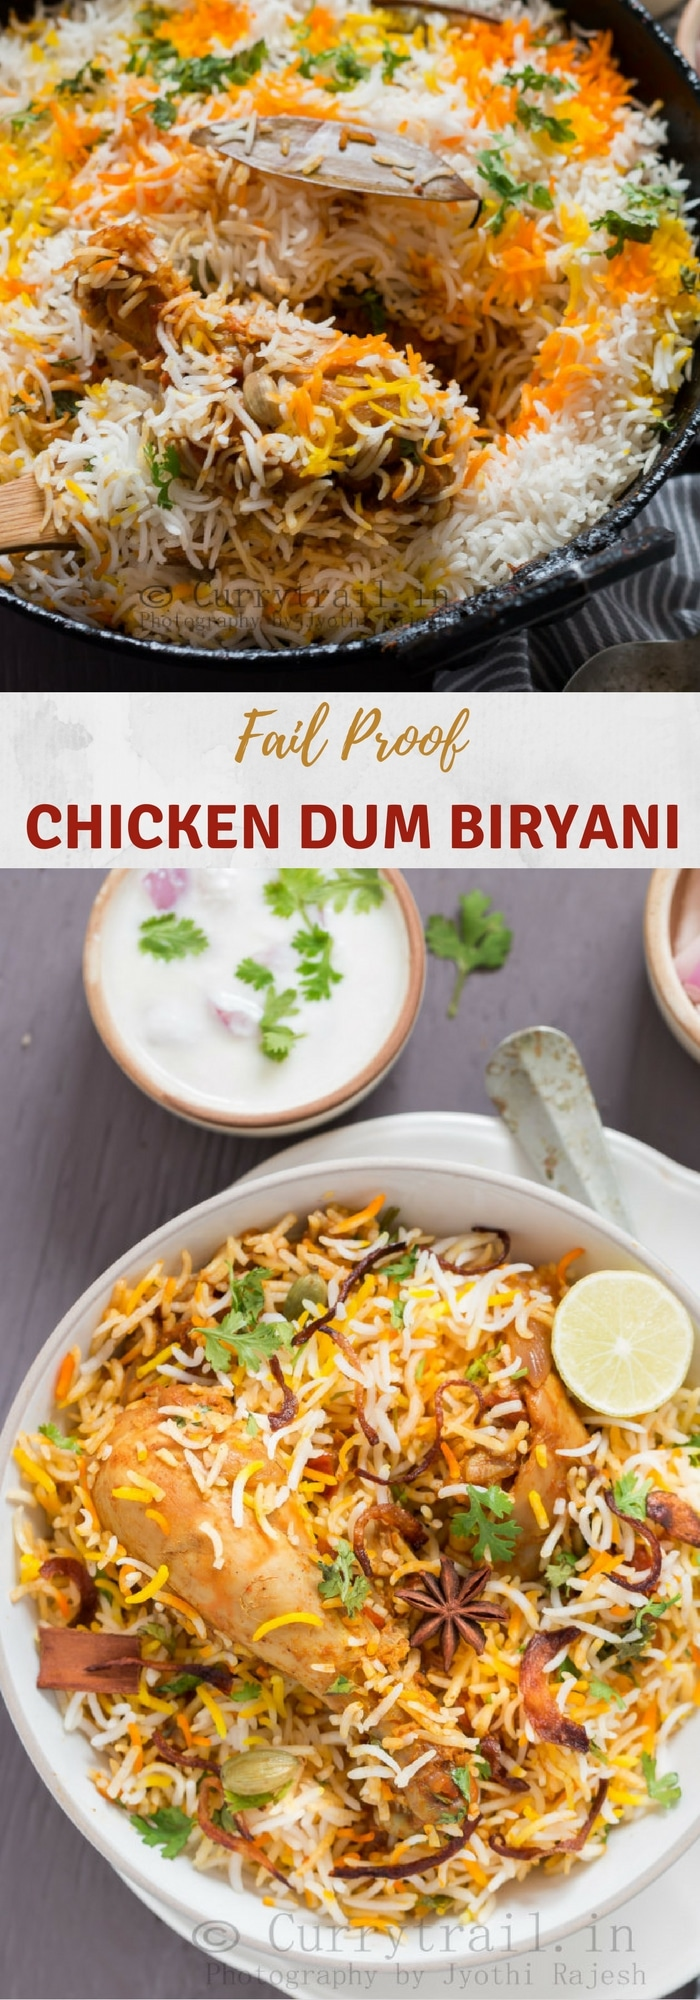 Photo of chicken dum biryani prep and served in white bowl with text overlay